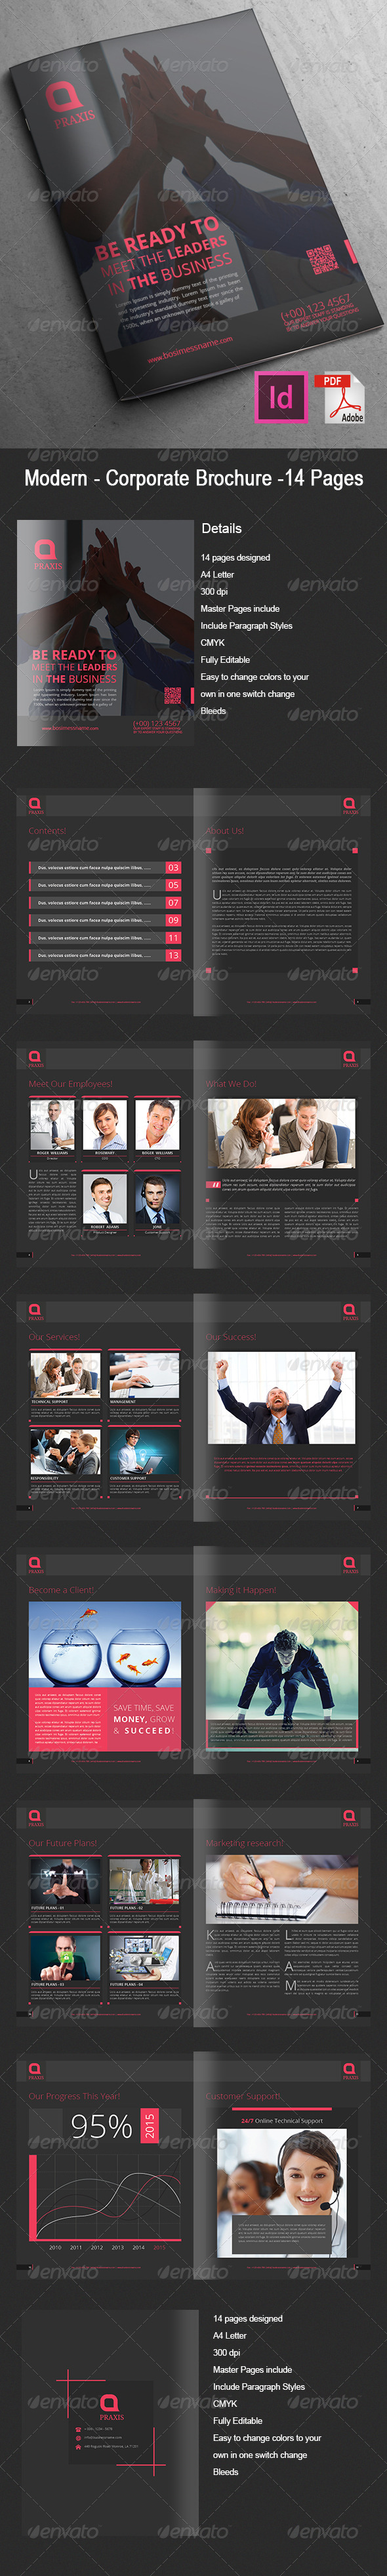 Modern - Corporate Brochure 14 Pages